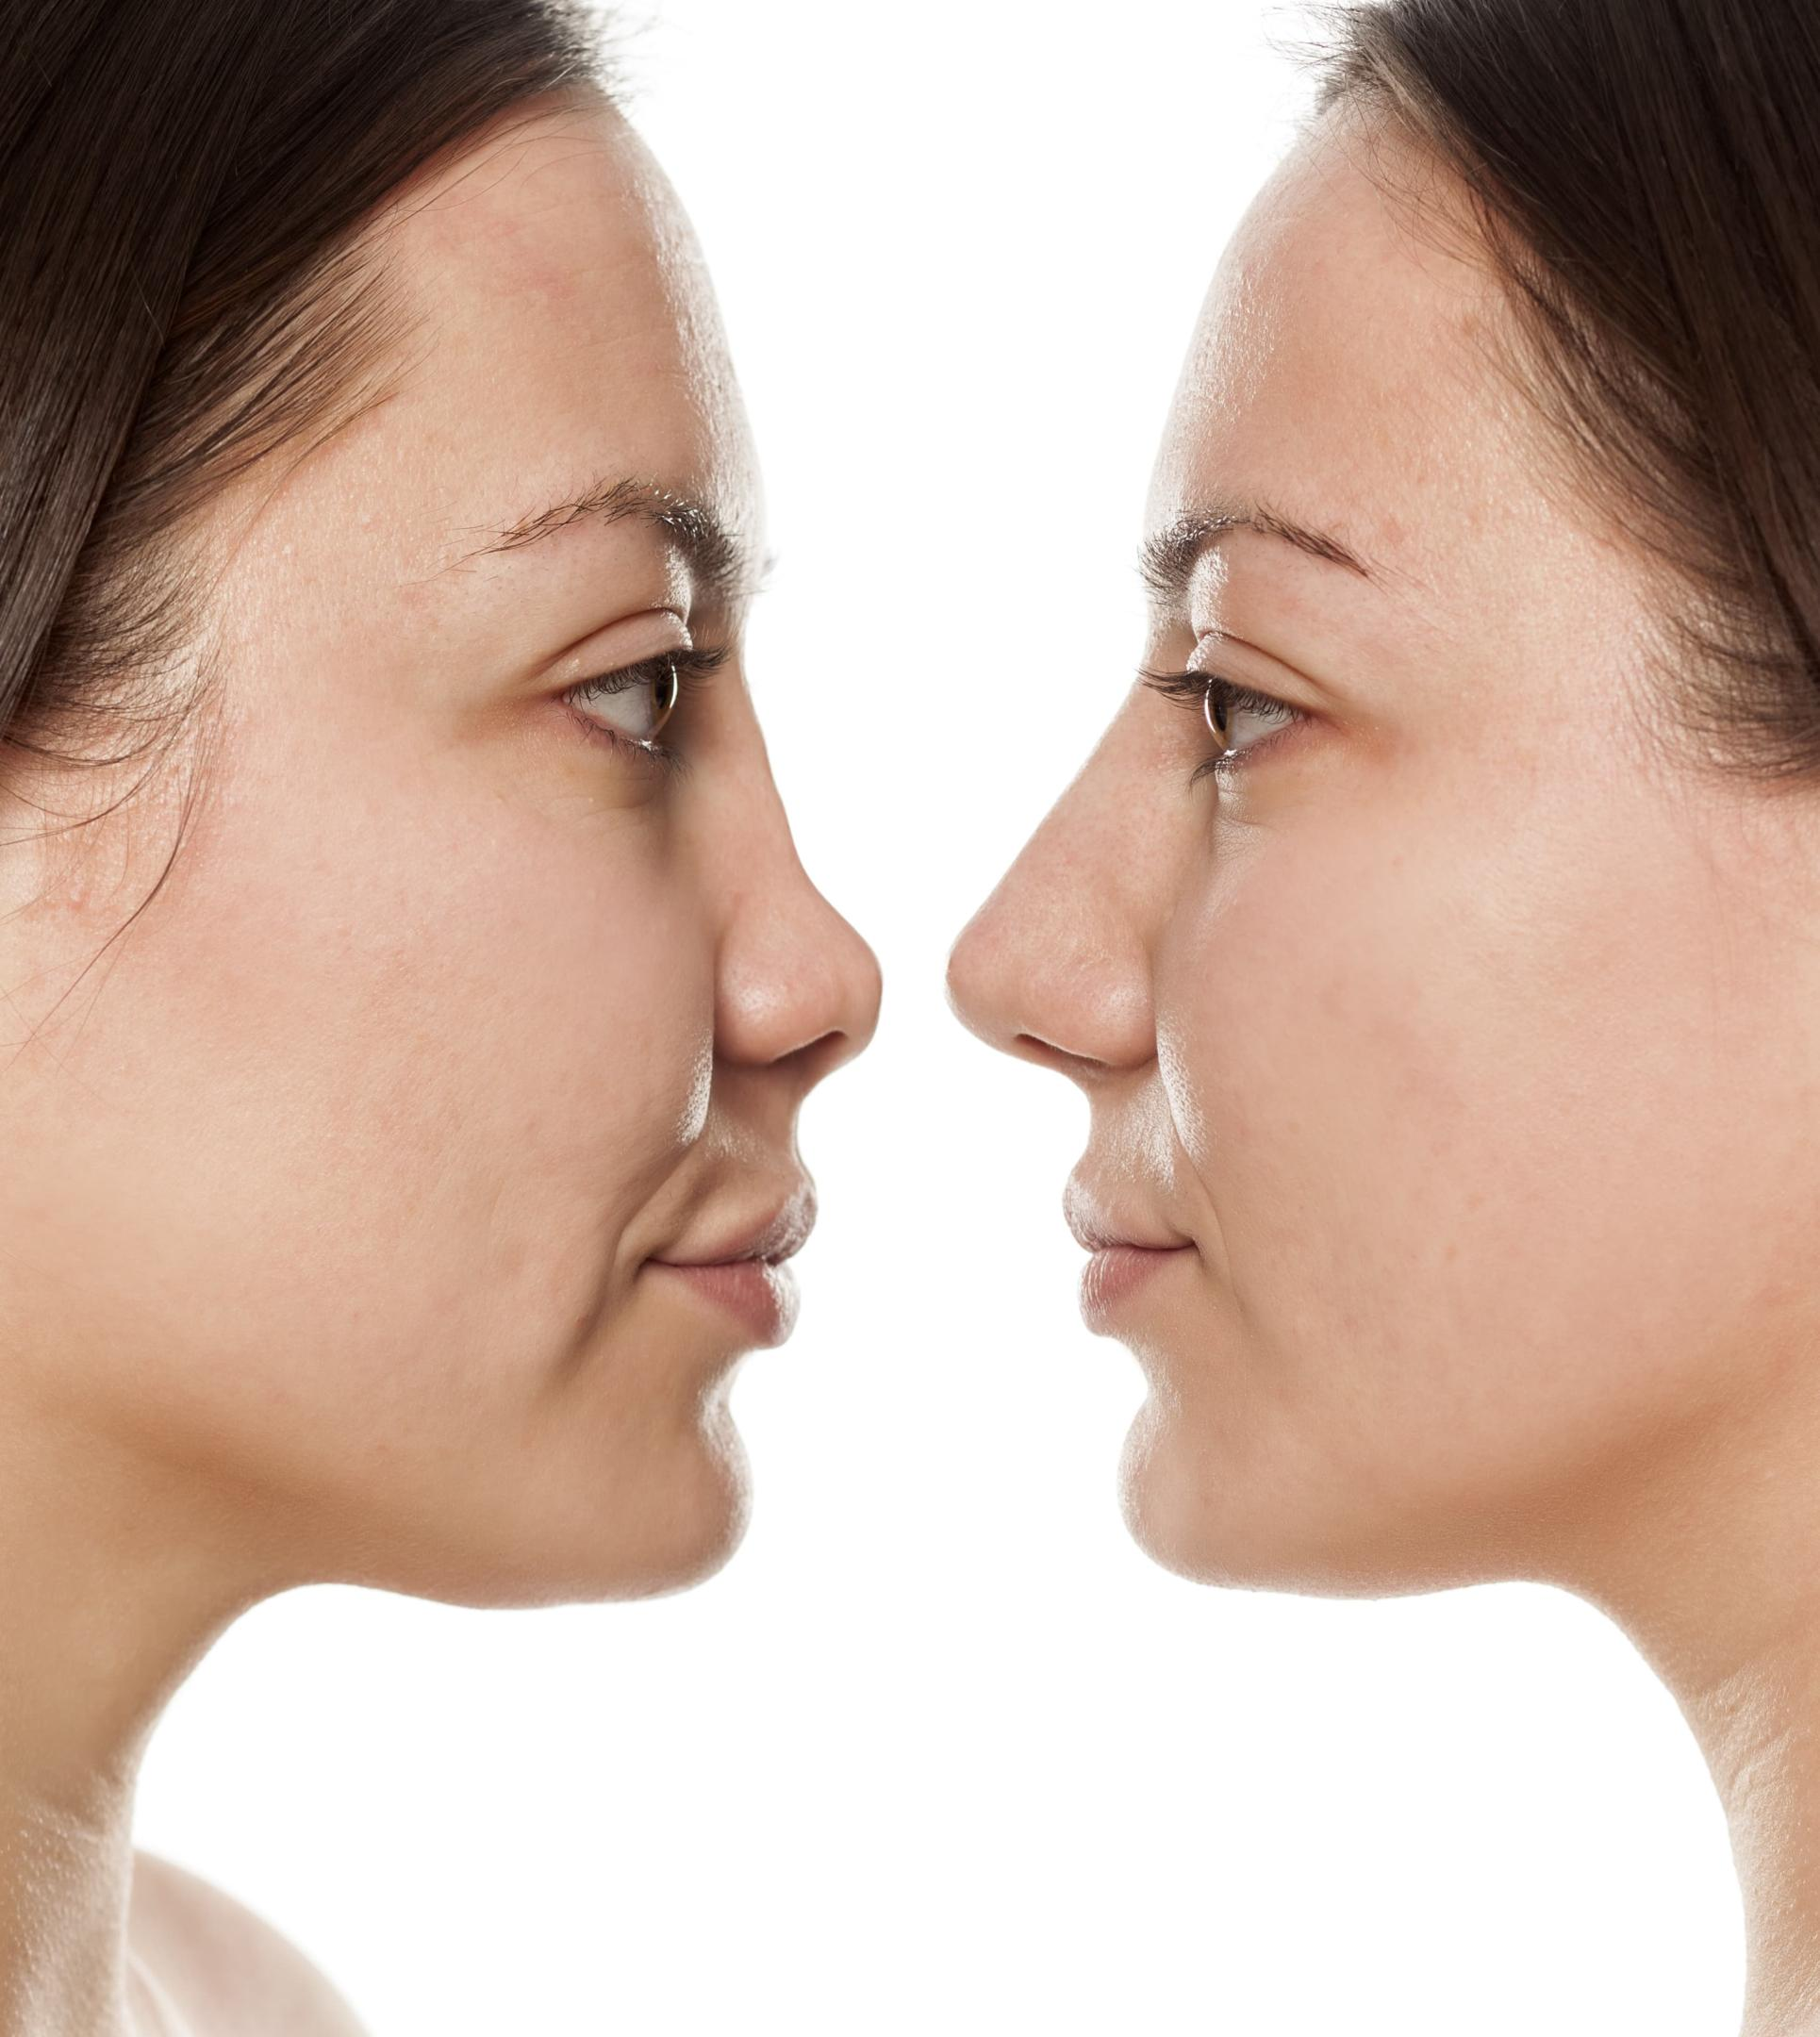 Face Plastic Surgery Before And After Pictures 1